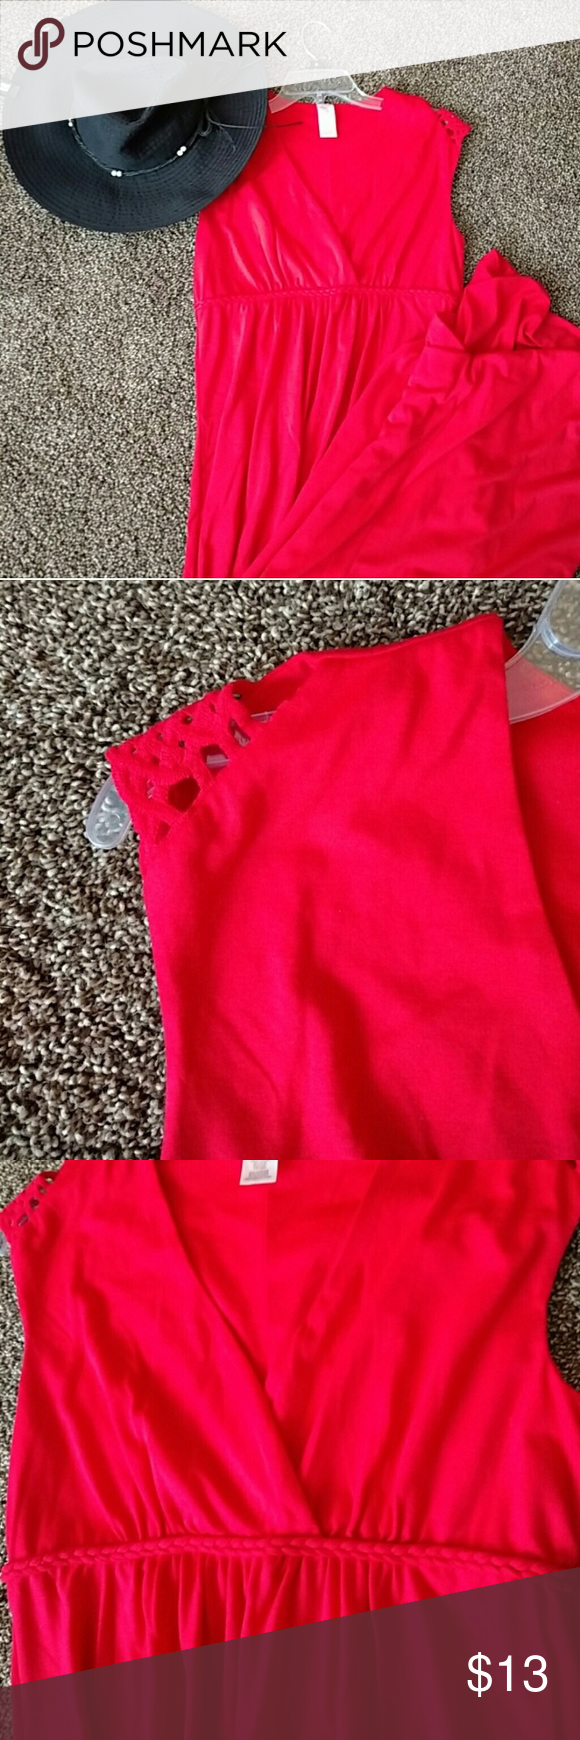 Red maxi dress size small empire waist with detail red maxi